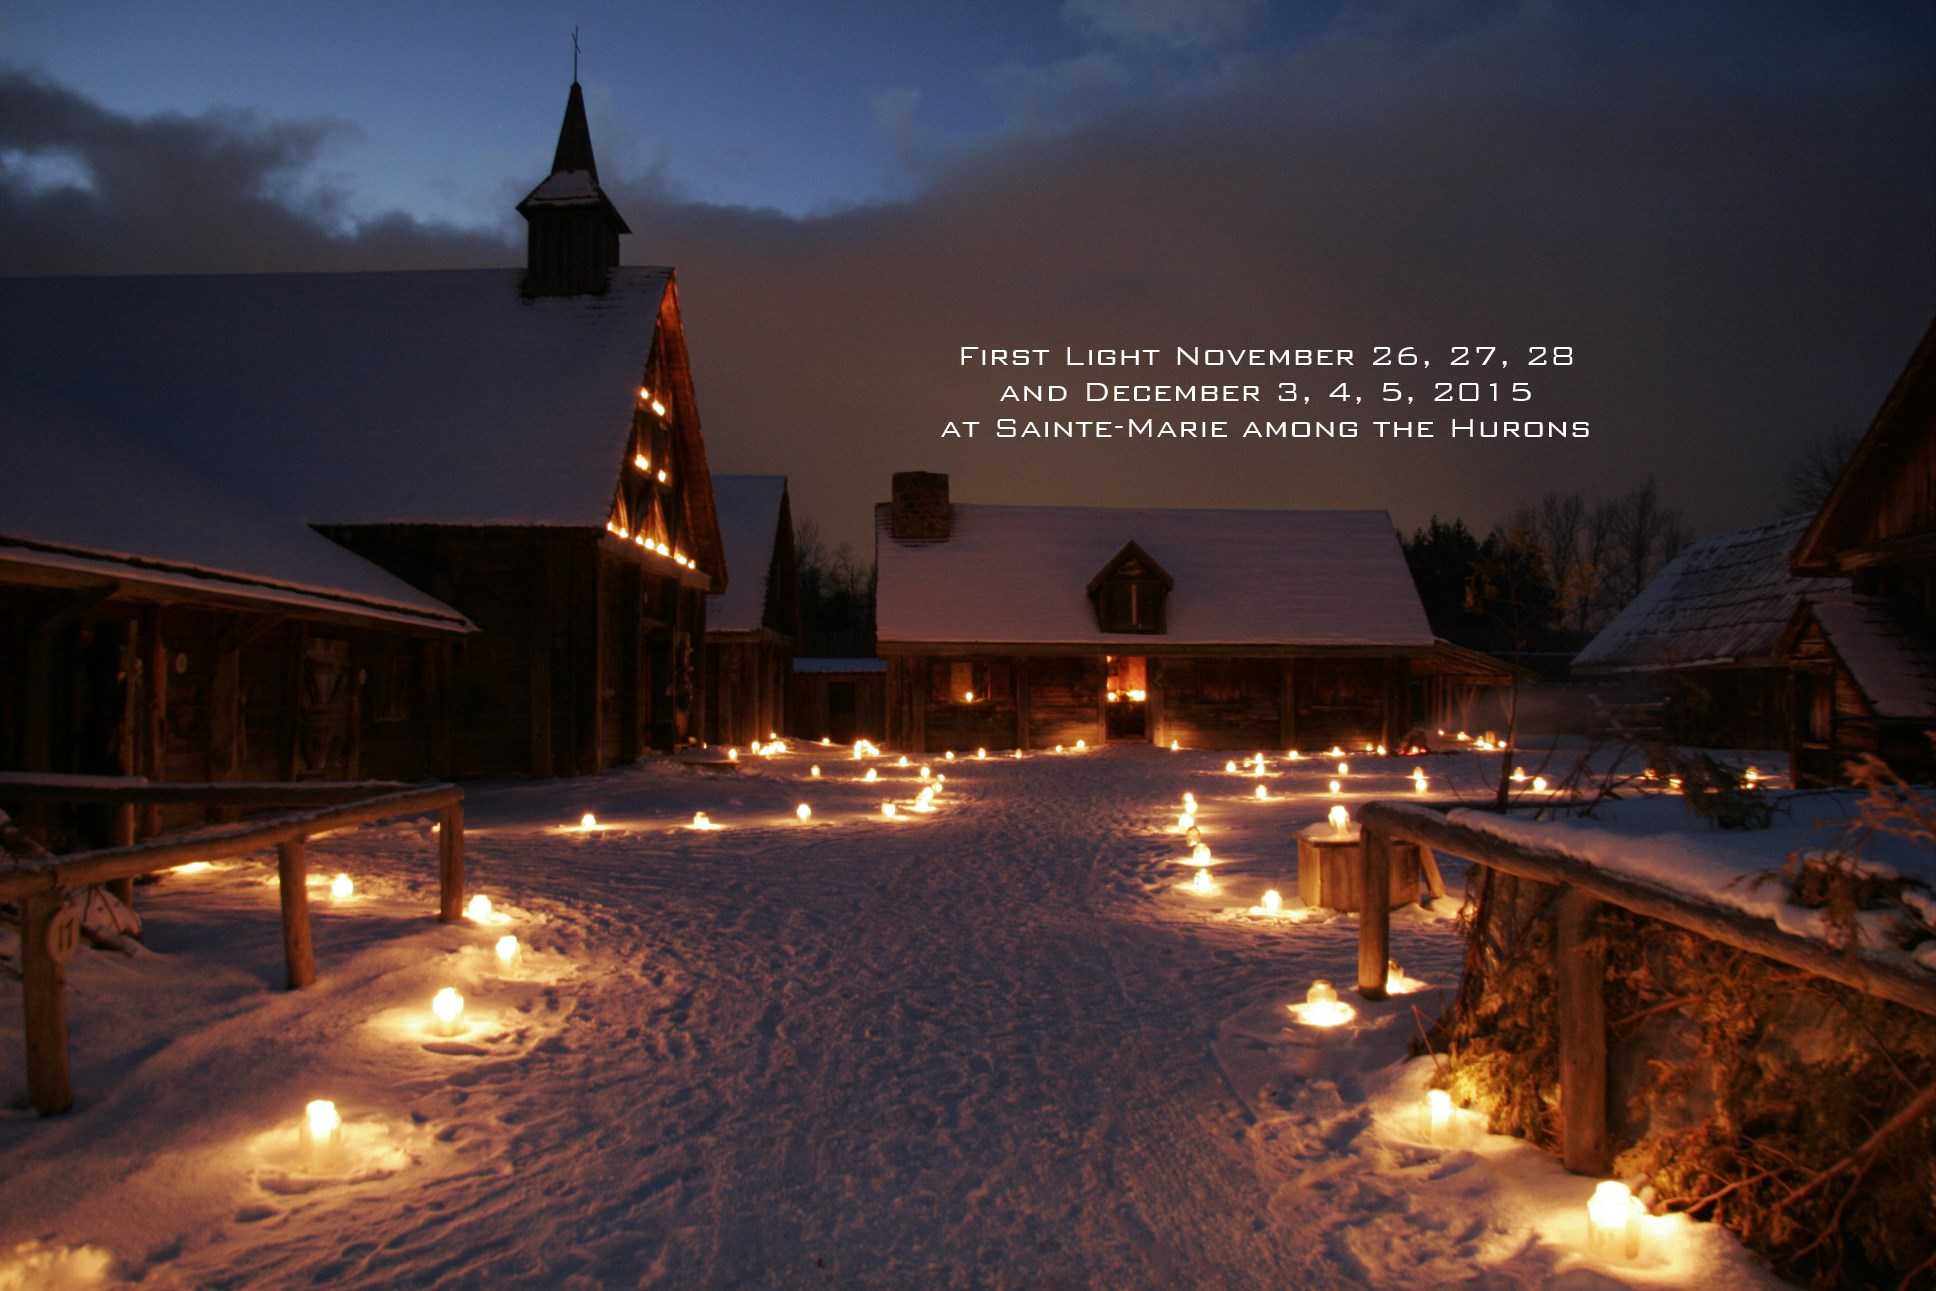 First Light November 26, 27, 28 and December 3, 4, 5, 2015 at Sainte-Marie among the Hurons, Highway 12, Tay Township